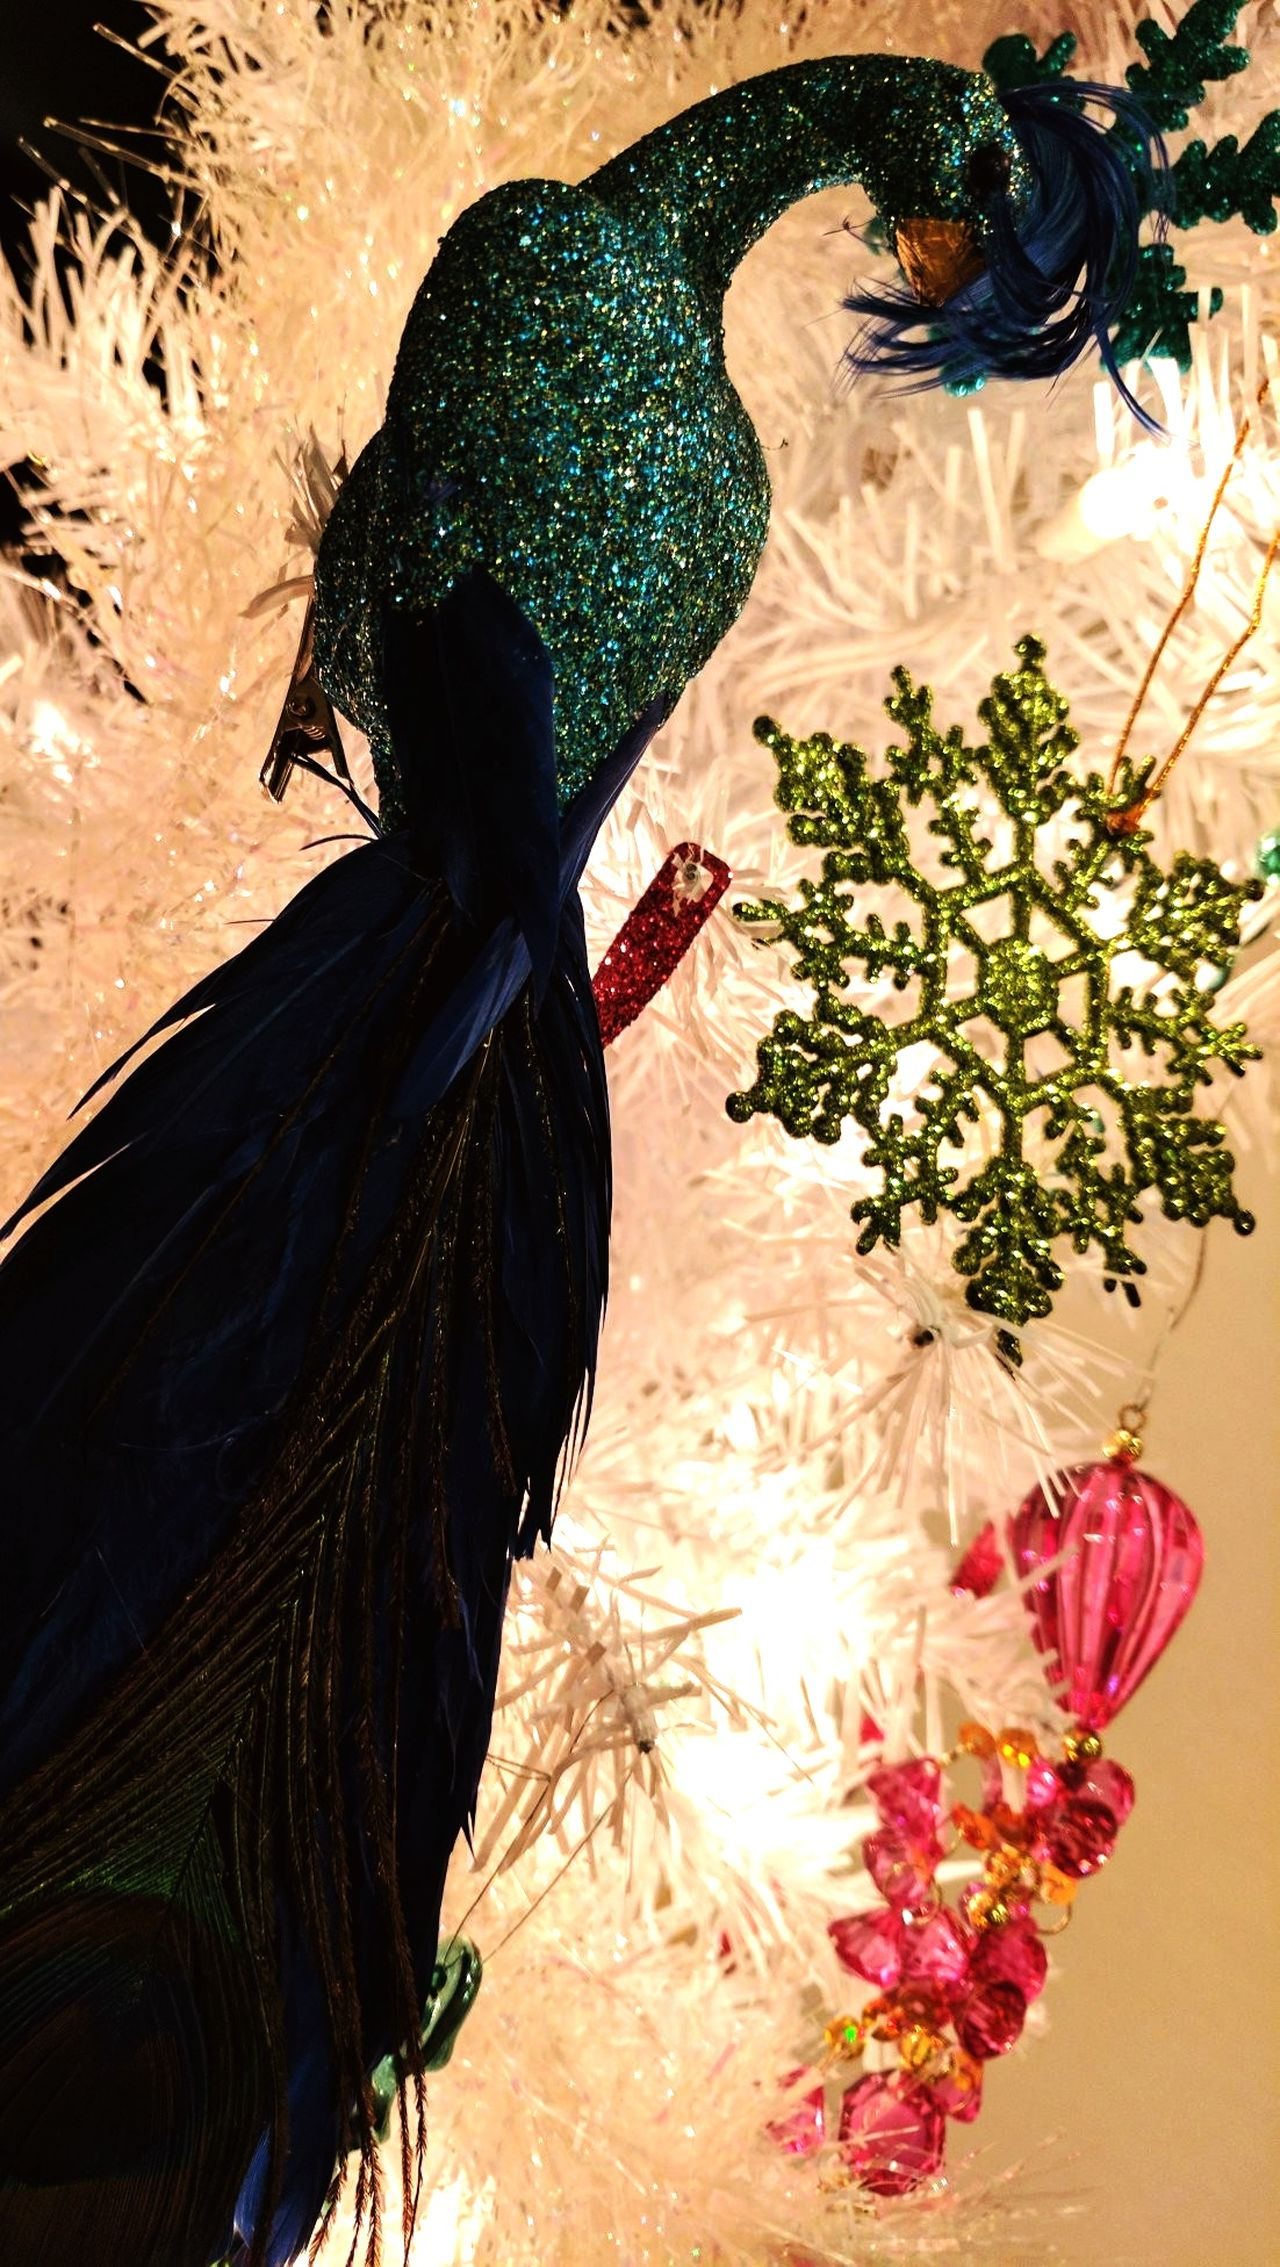 Peacock Tree EyeEmNewHere Beauty In Nature Paisley Peacock Feather Peacock Blue Christmas Decorations Christmas Time Christmas Tree